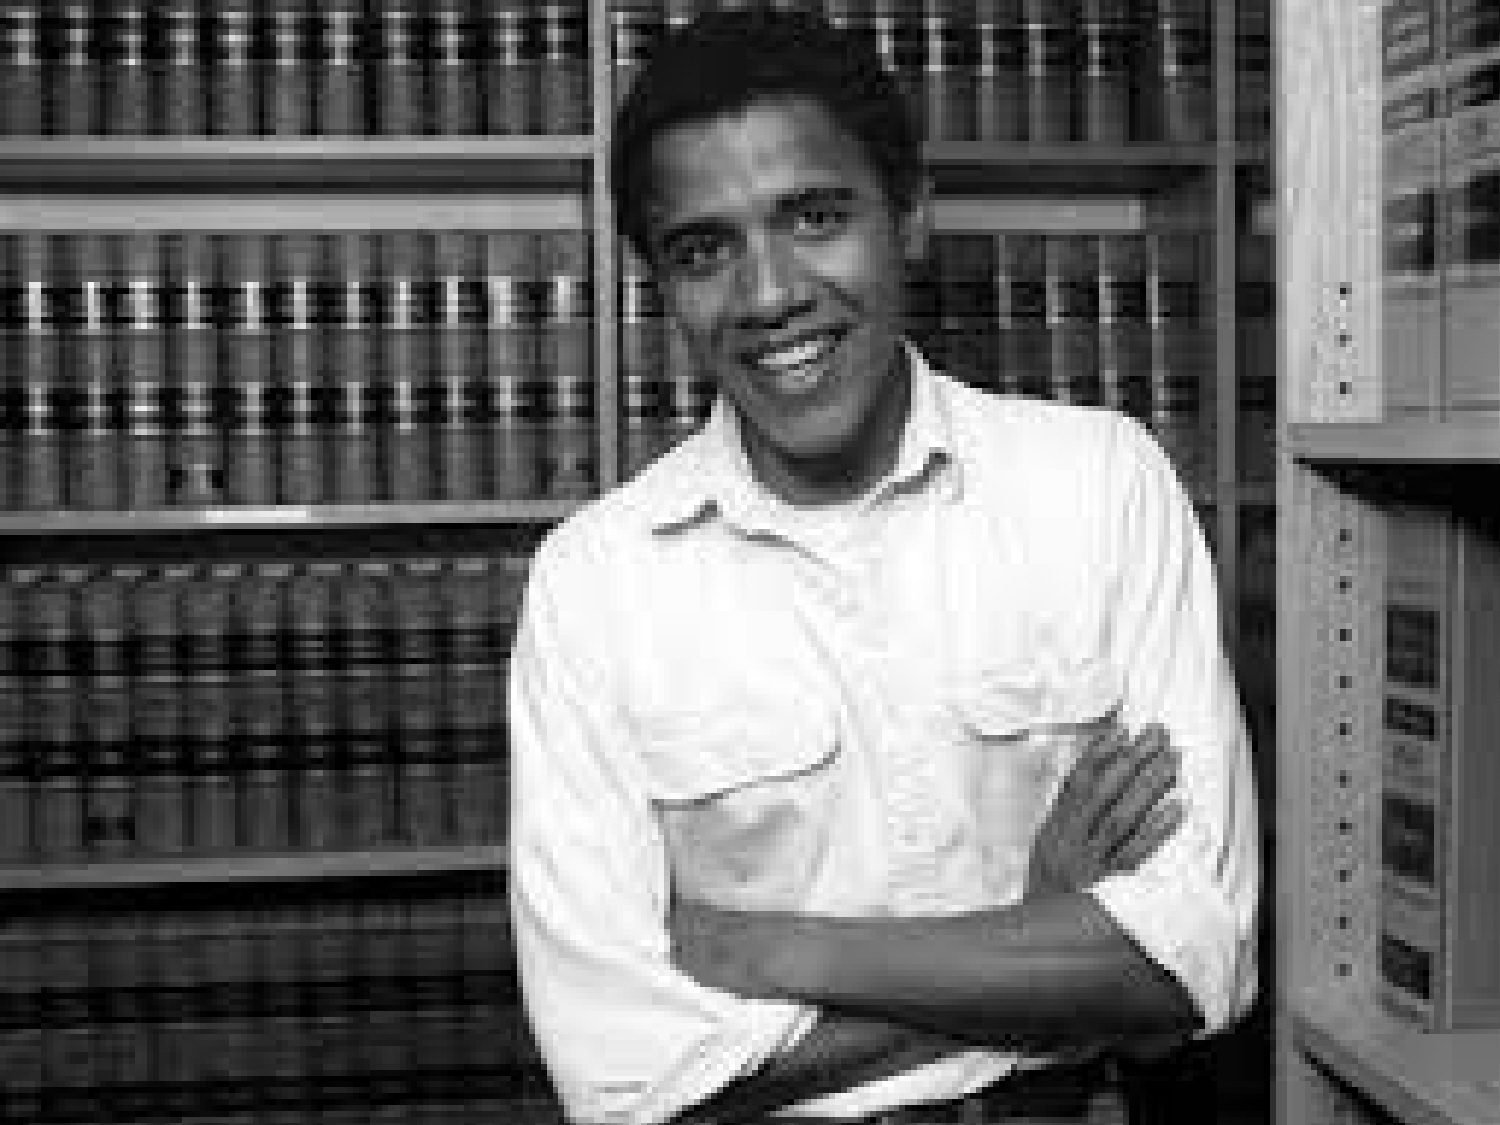 Snopes com: Barack Obama's Columbia University Thesis